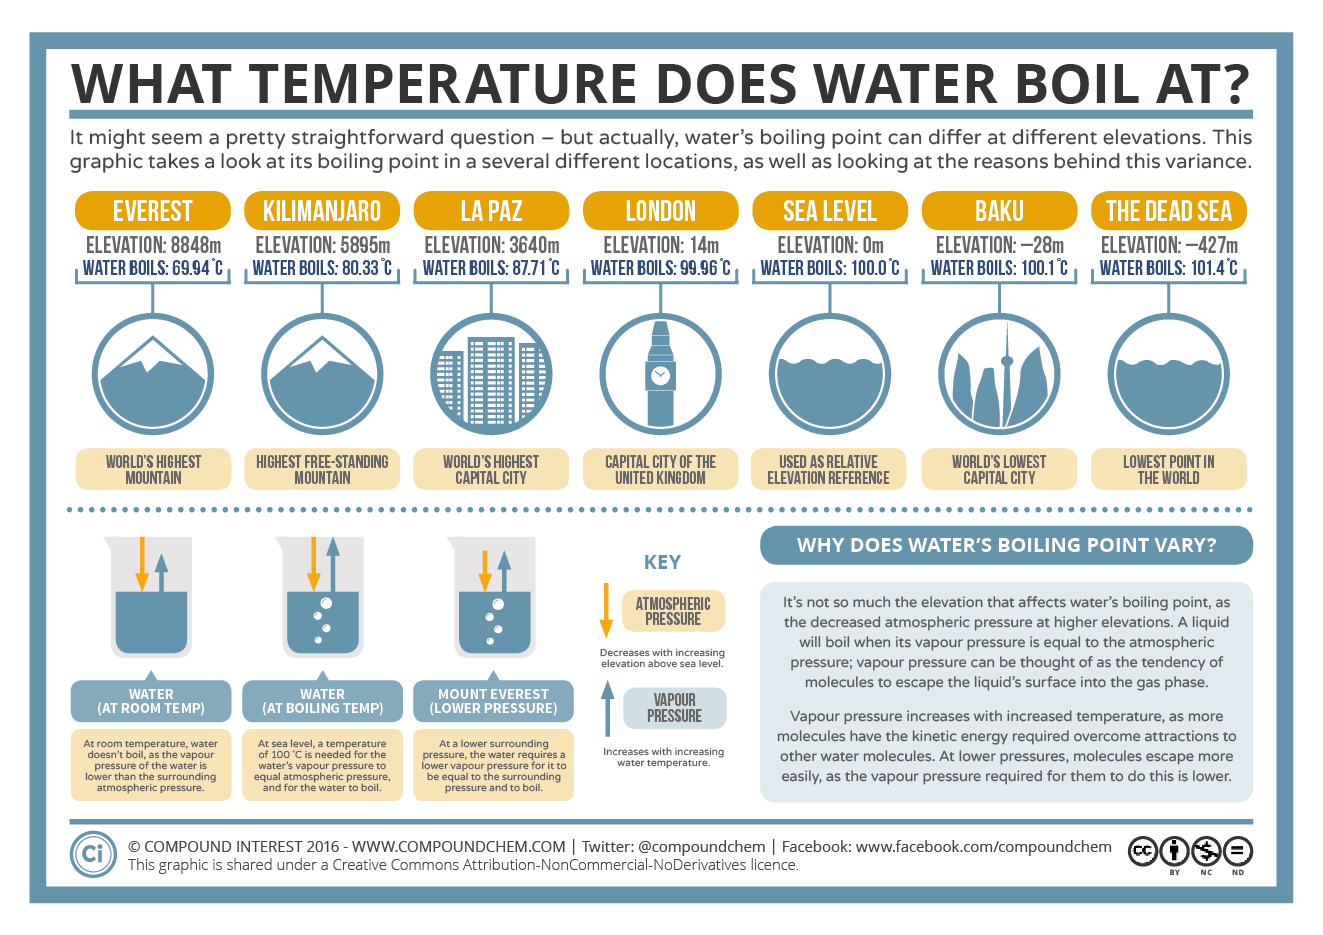 Higher Temperatures Equal Lower Test >> What Temperature Does Water Boil At Boiling Point Elevation